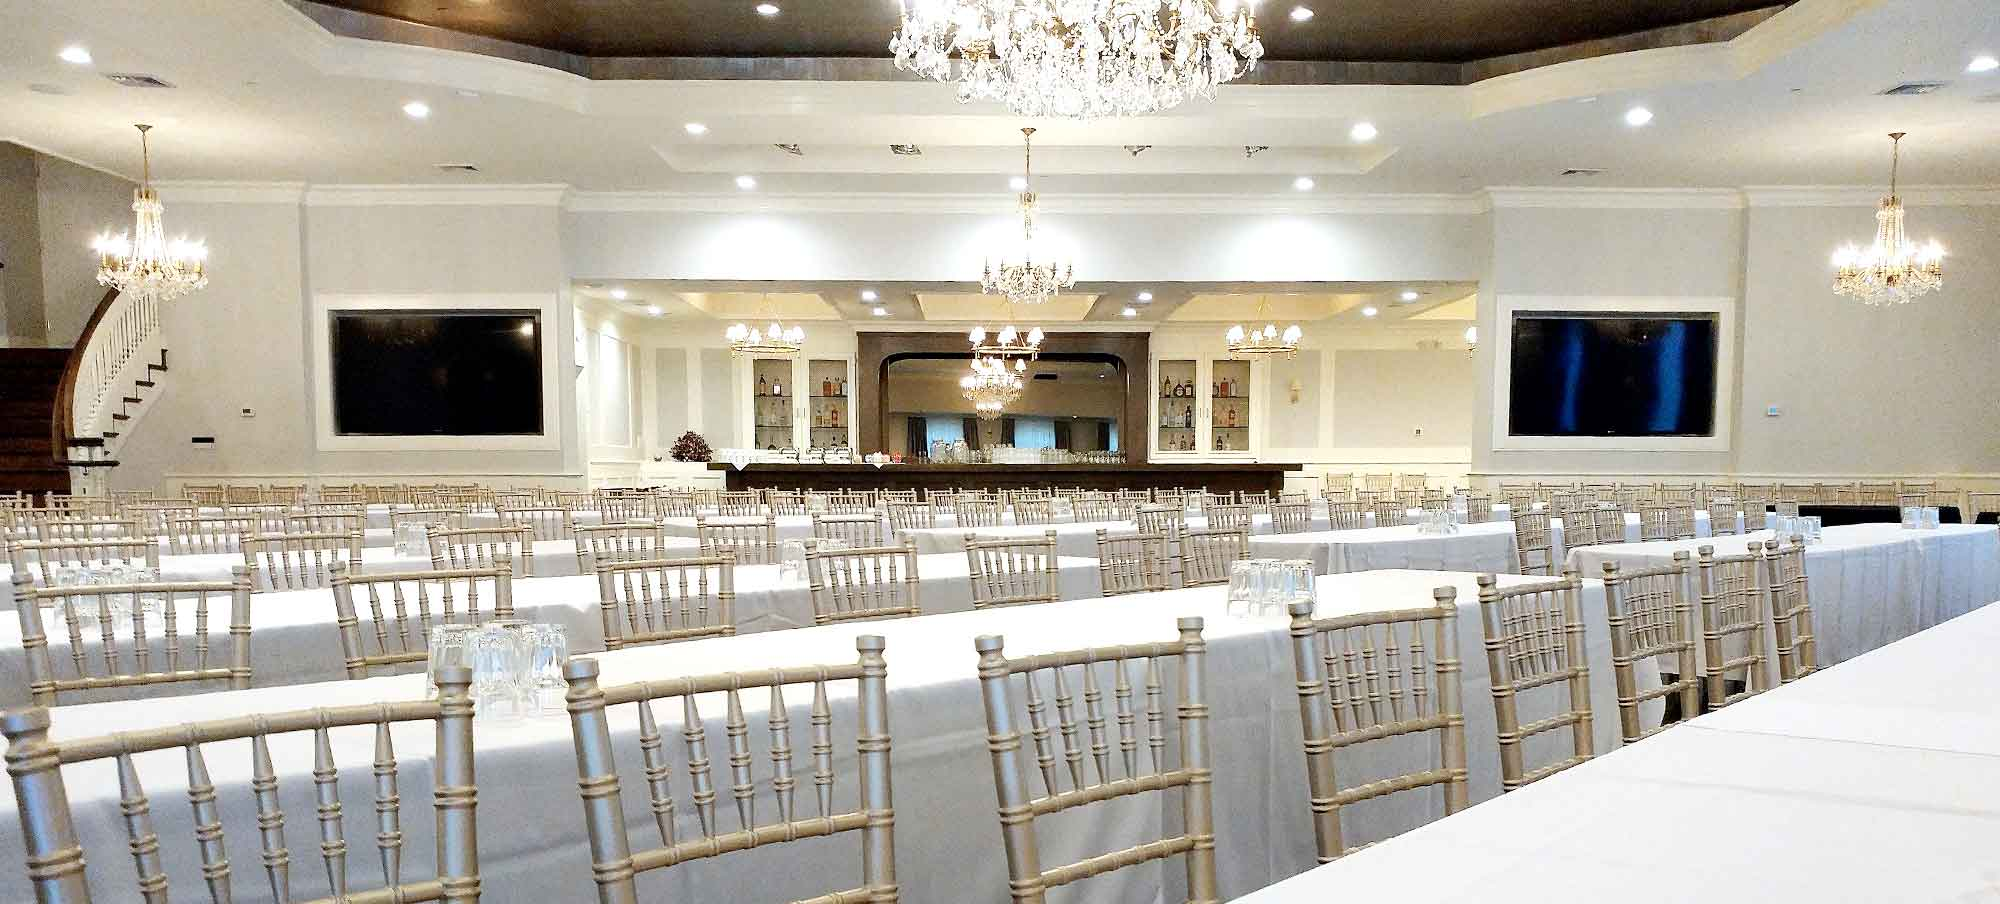 Corporate Event held in the Grand Ballroom